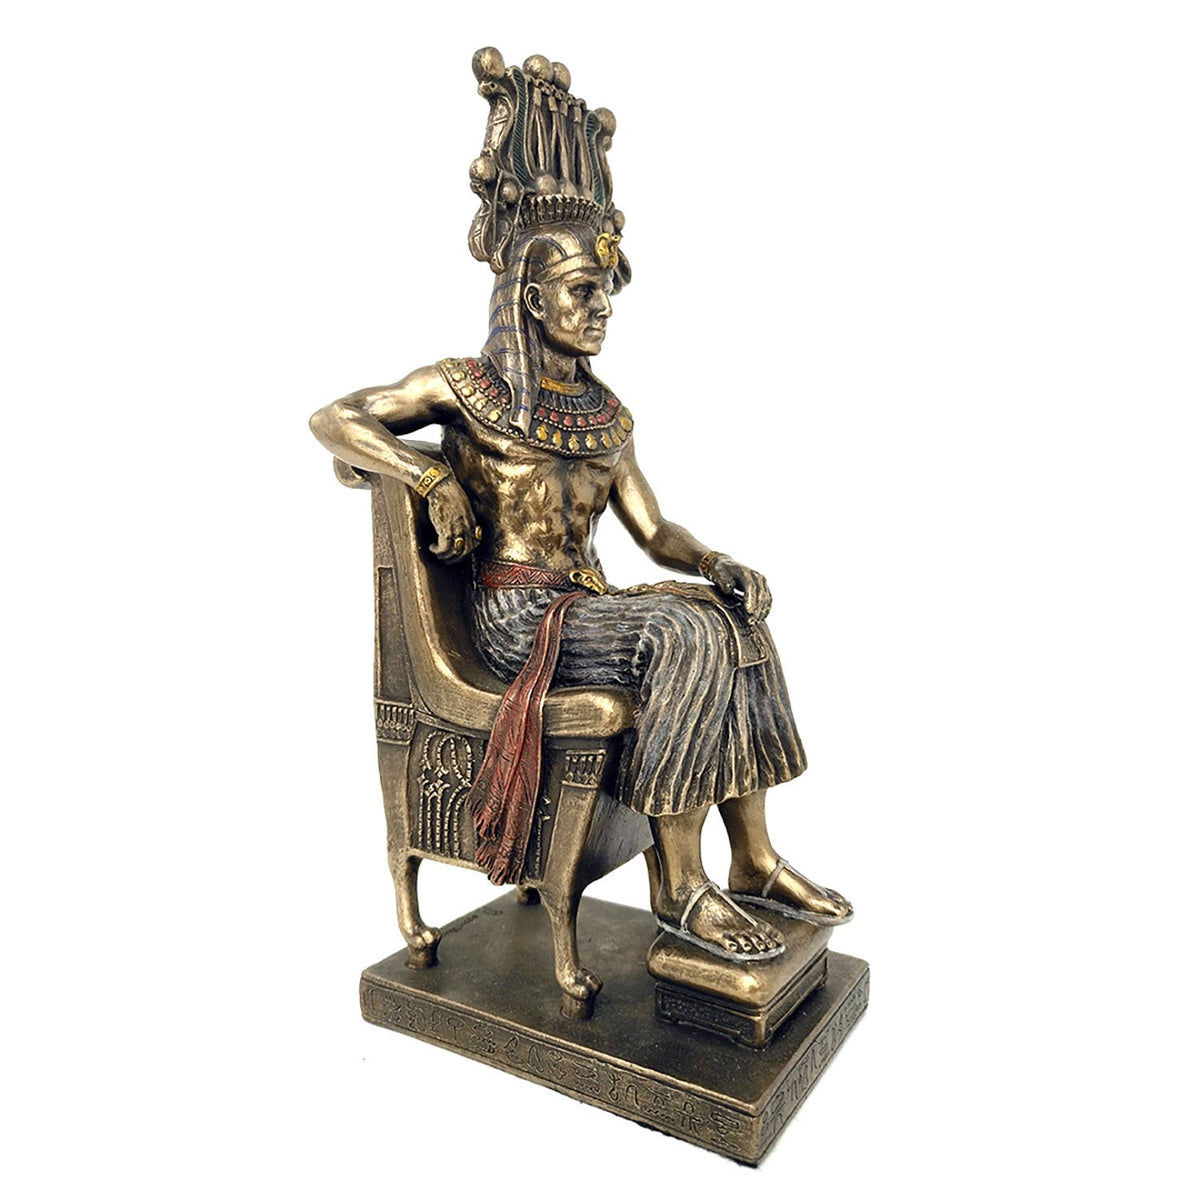 Egyptian Pharaoh sitting on Throne with Ceremonial Headdress